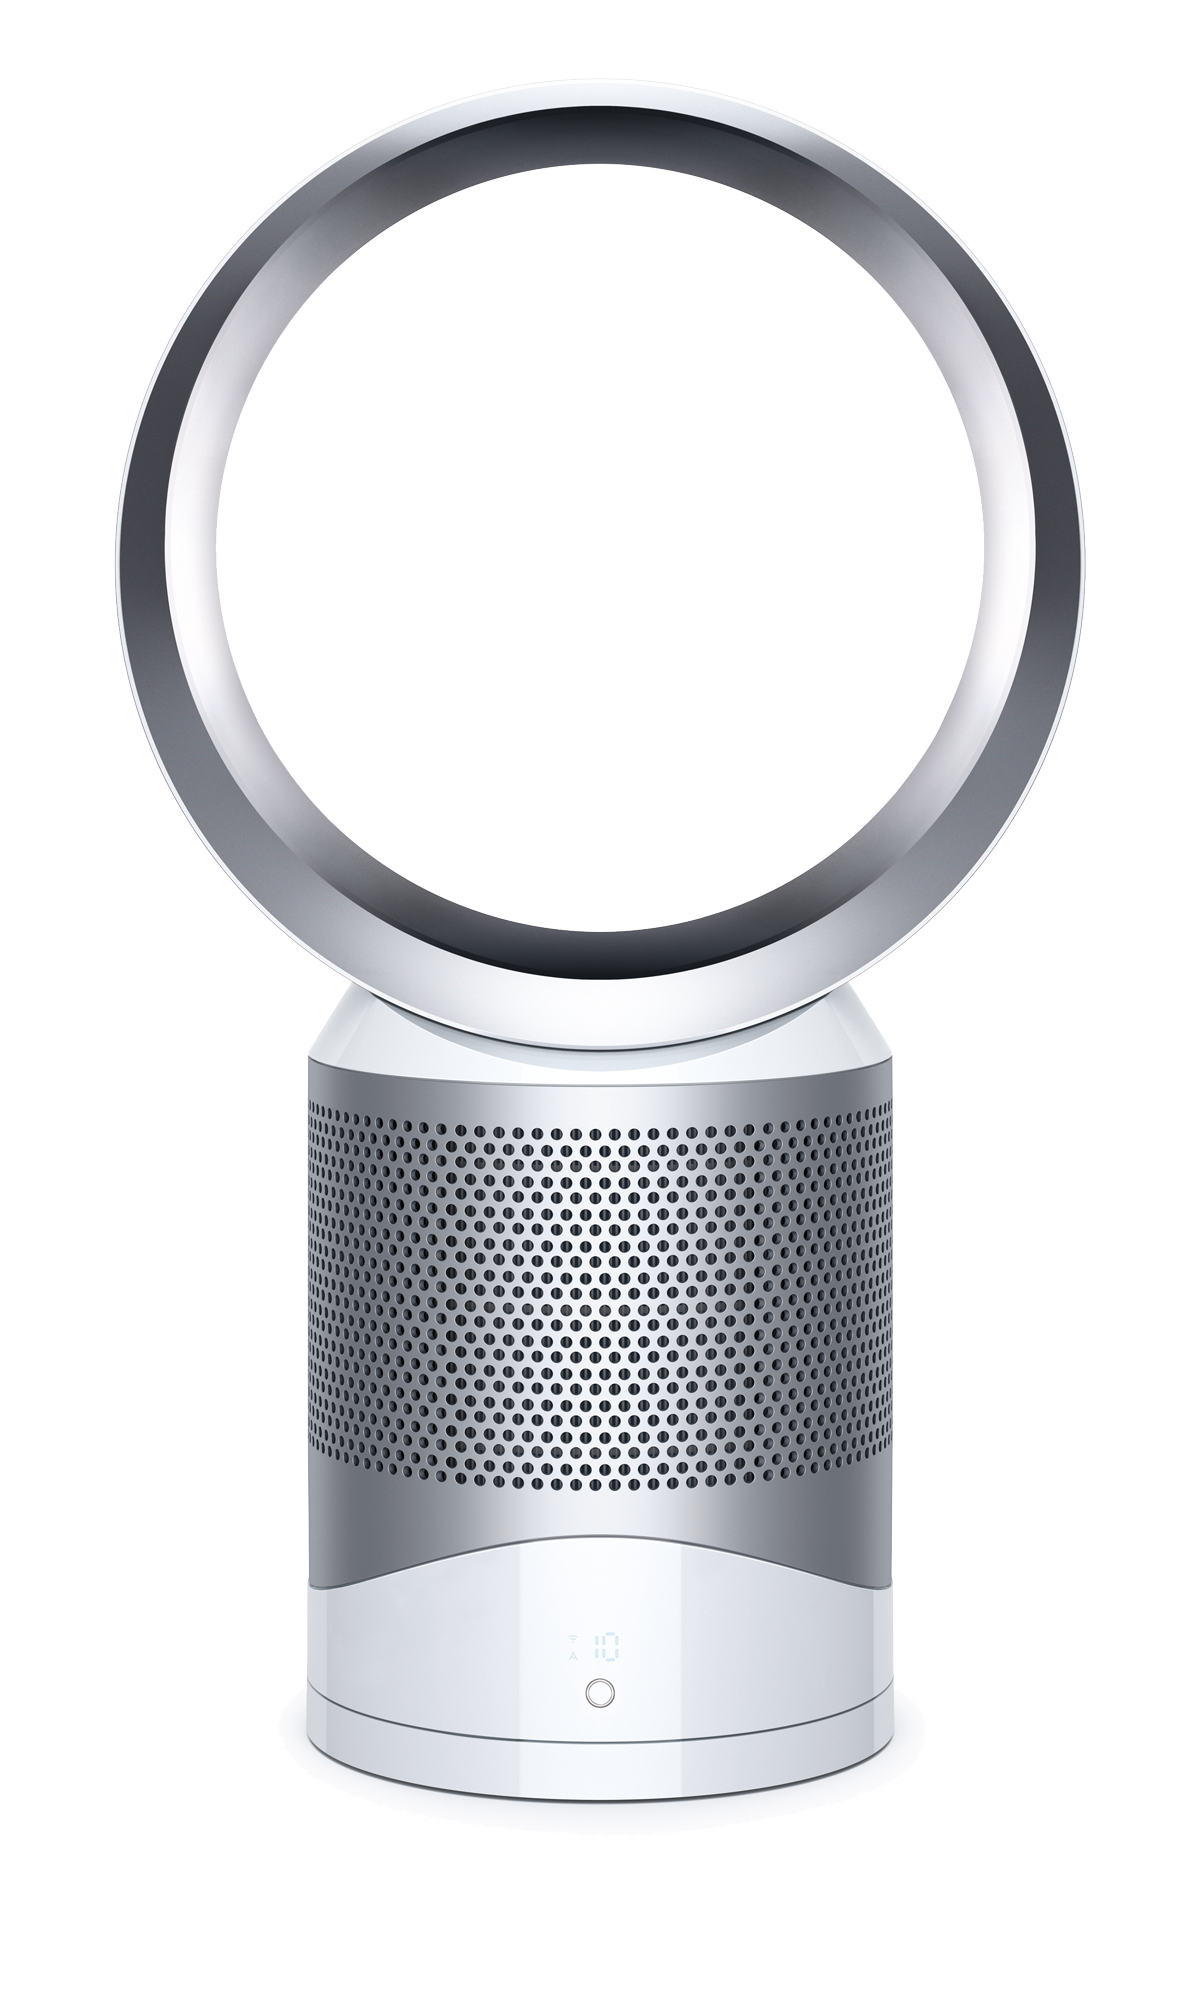 Dyson pure cool link purificateur d bit d 39 air - Dyson purificateur d air ...